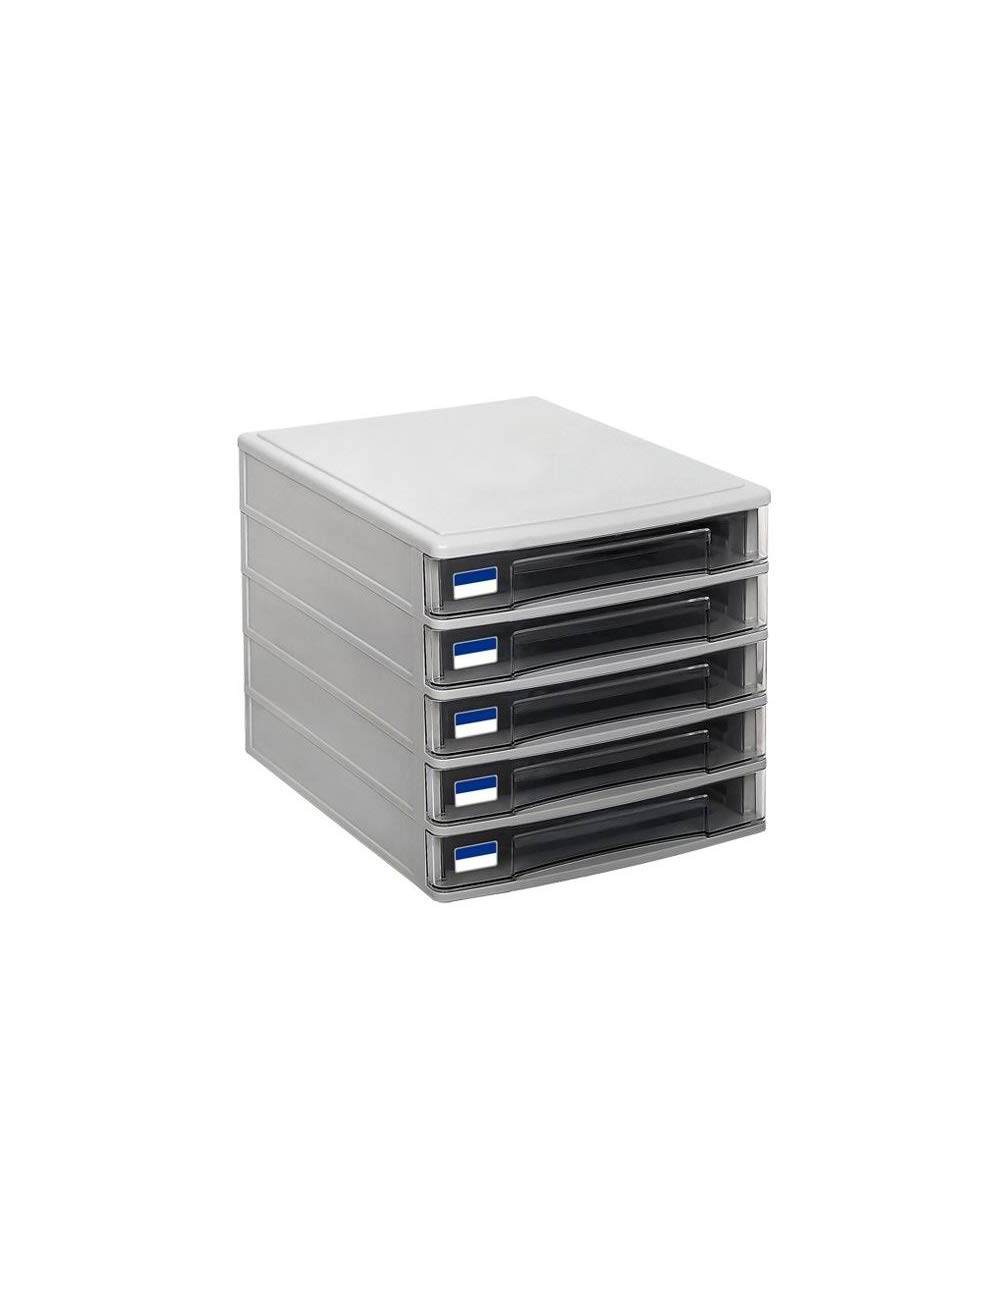 File Cabinets 5 Drawers Innovation Charming Design Gray, Pink Office File Manager Locker Desktop Manager (Color : A)